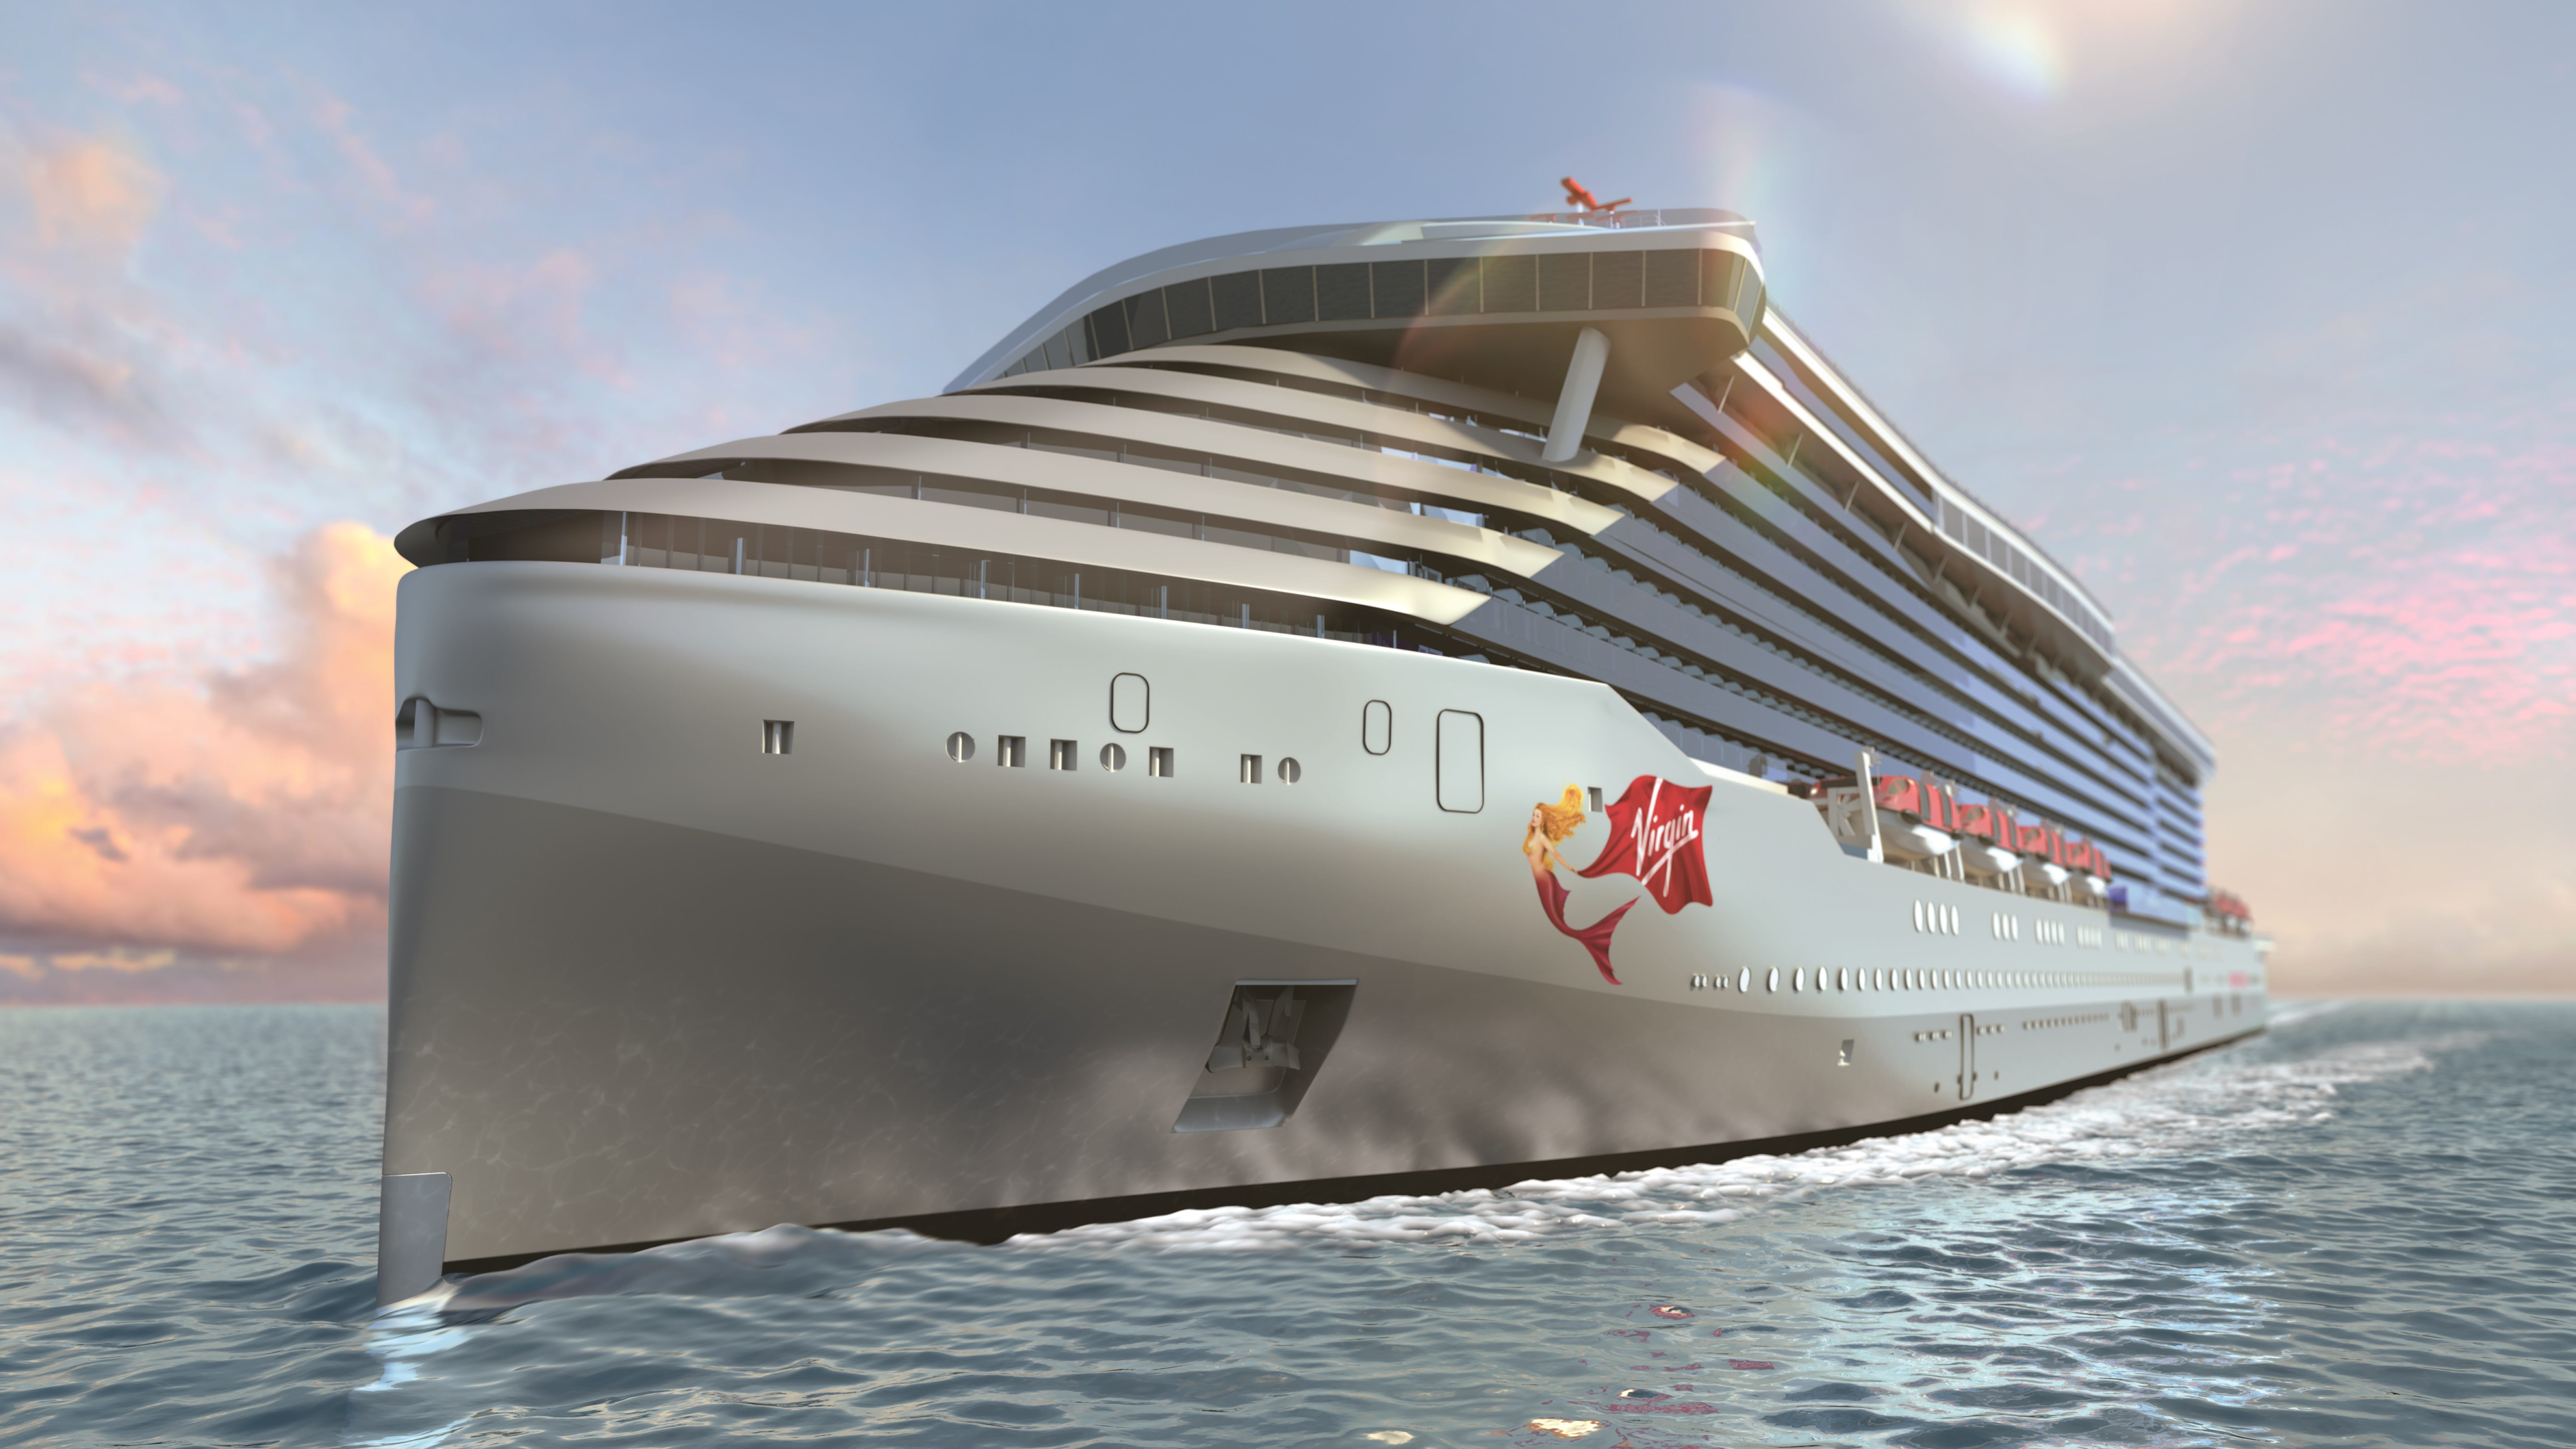 Virgin Voyages First cruise ship to